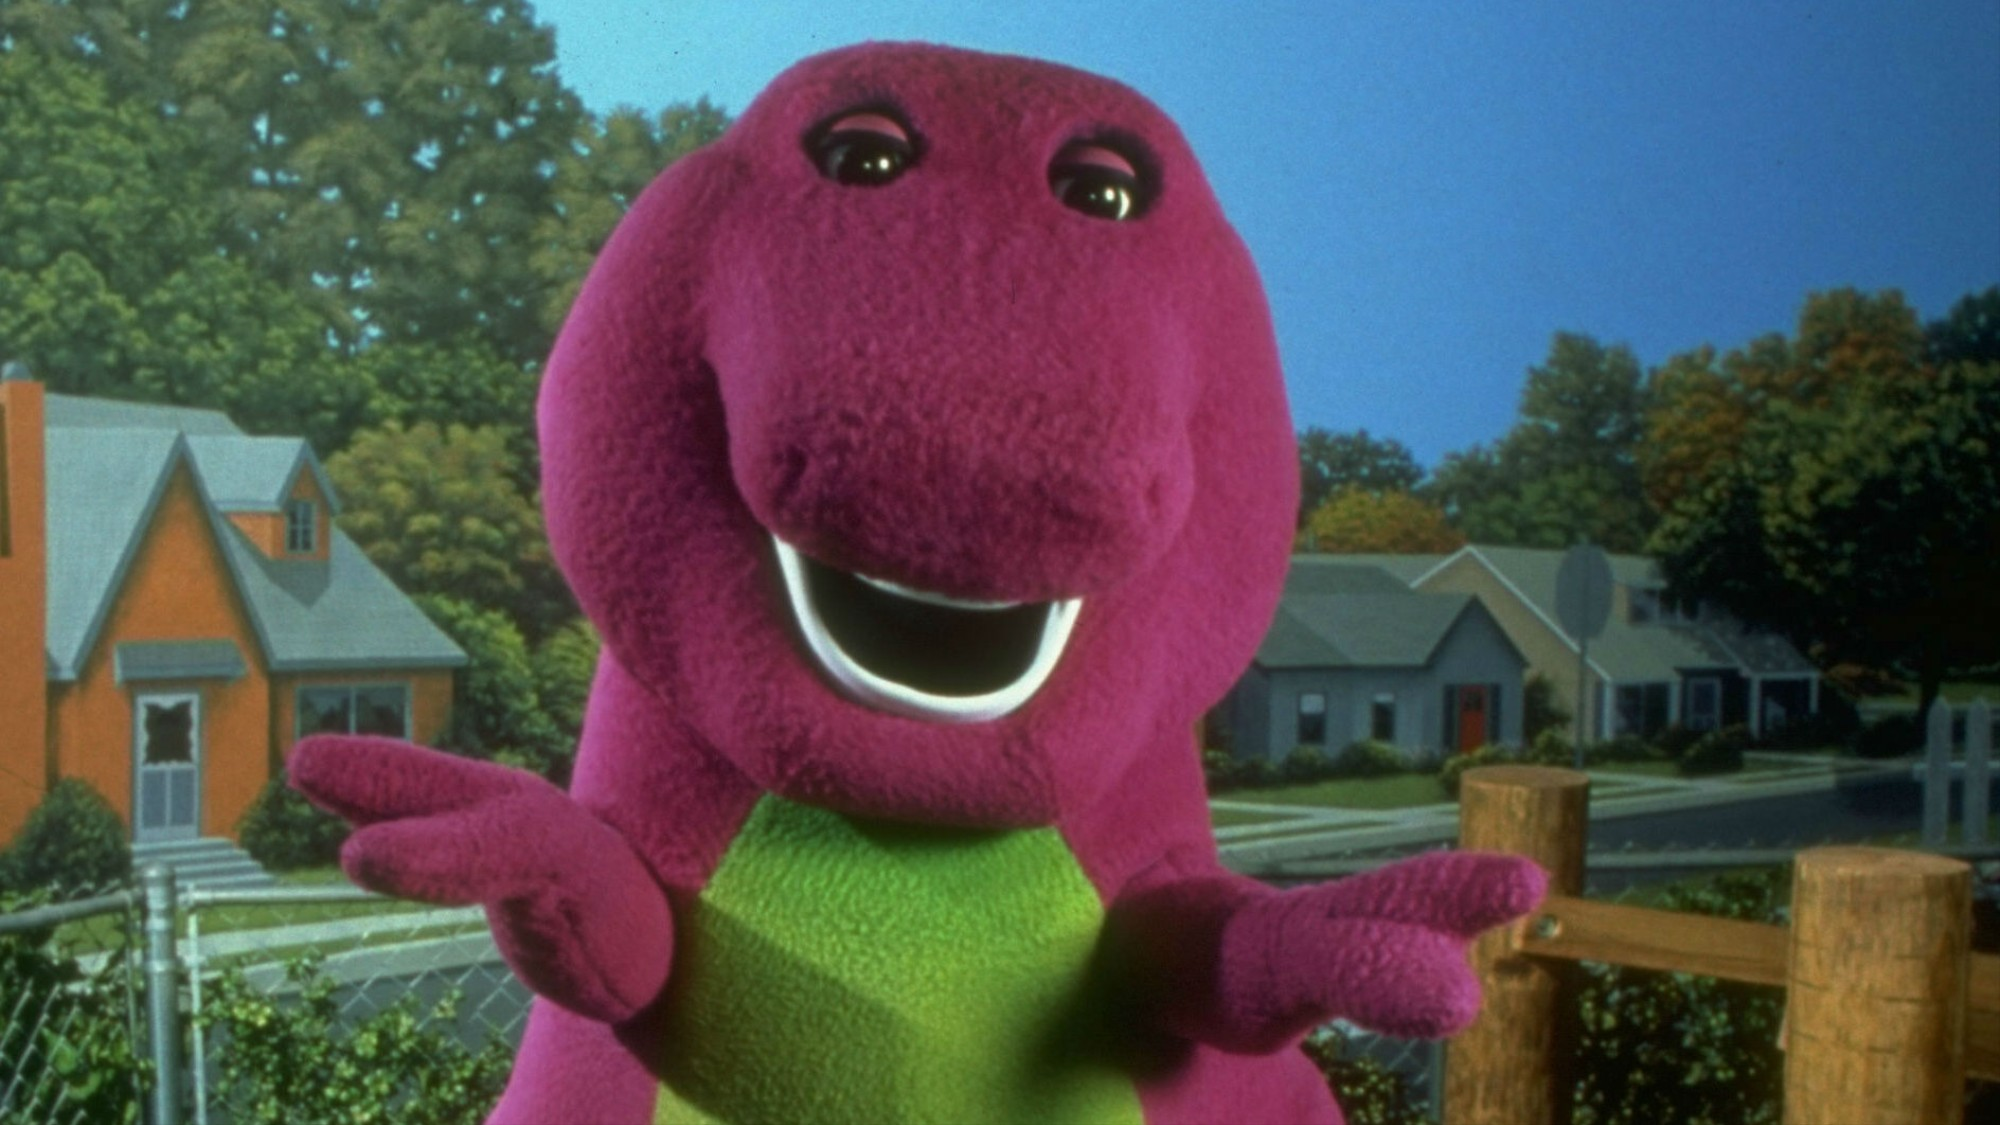 The Guy Who Played Barney the Dinosaur Now Runs a Tantric